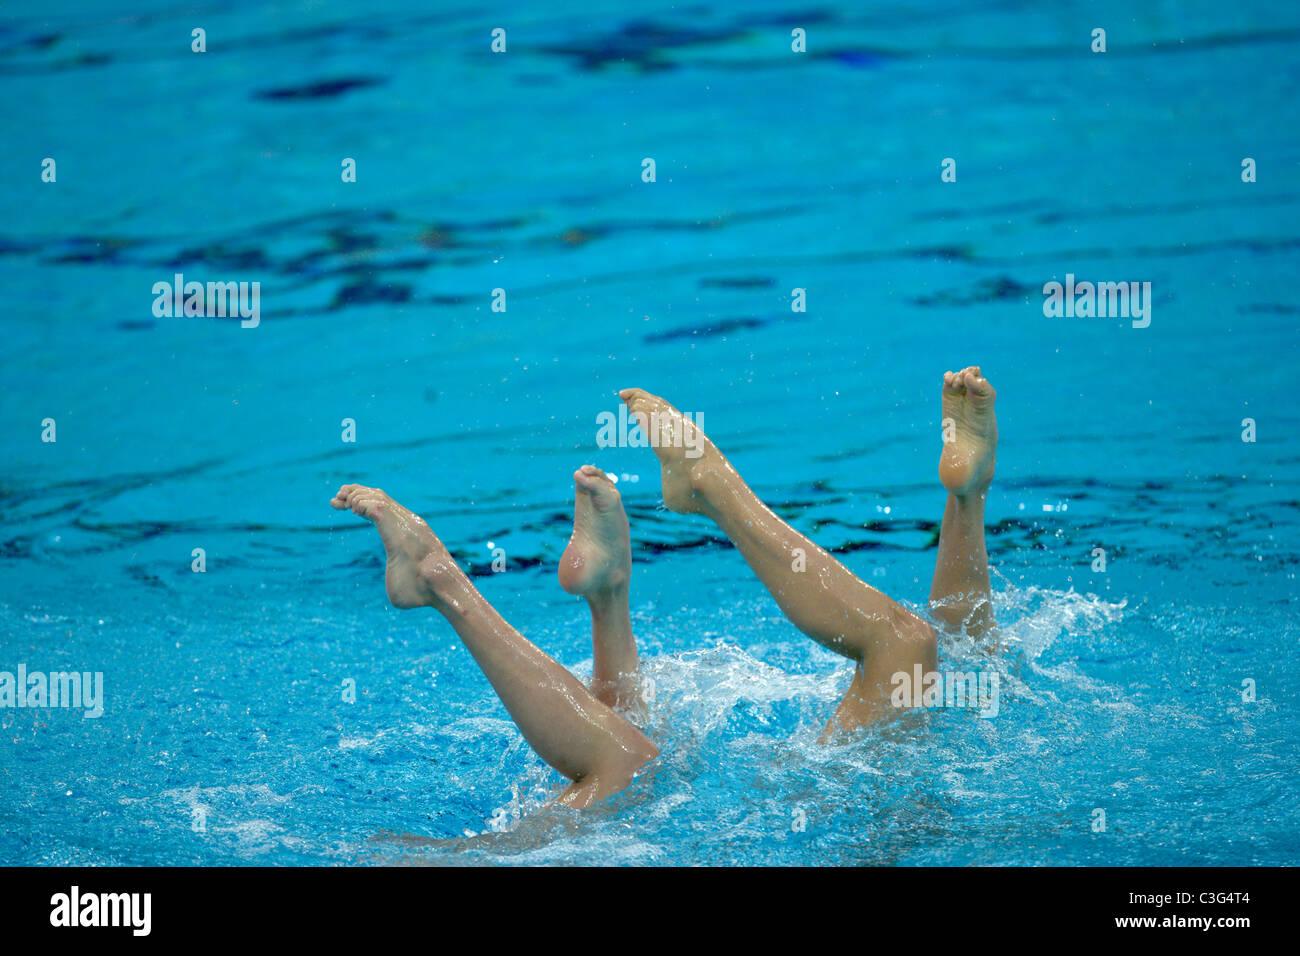 Competitors in Duet Synchronized Swimming at the 2008 Olympic Summer Games, Beijing, China. - Stock Image